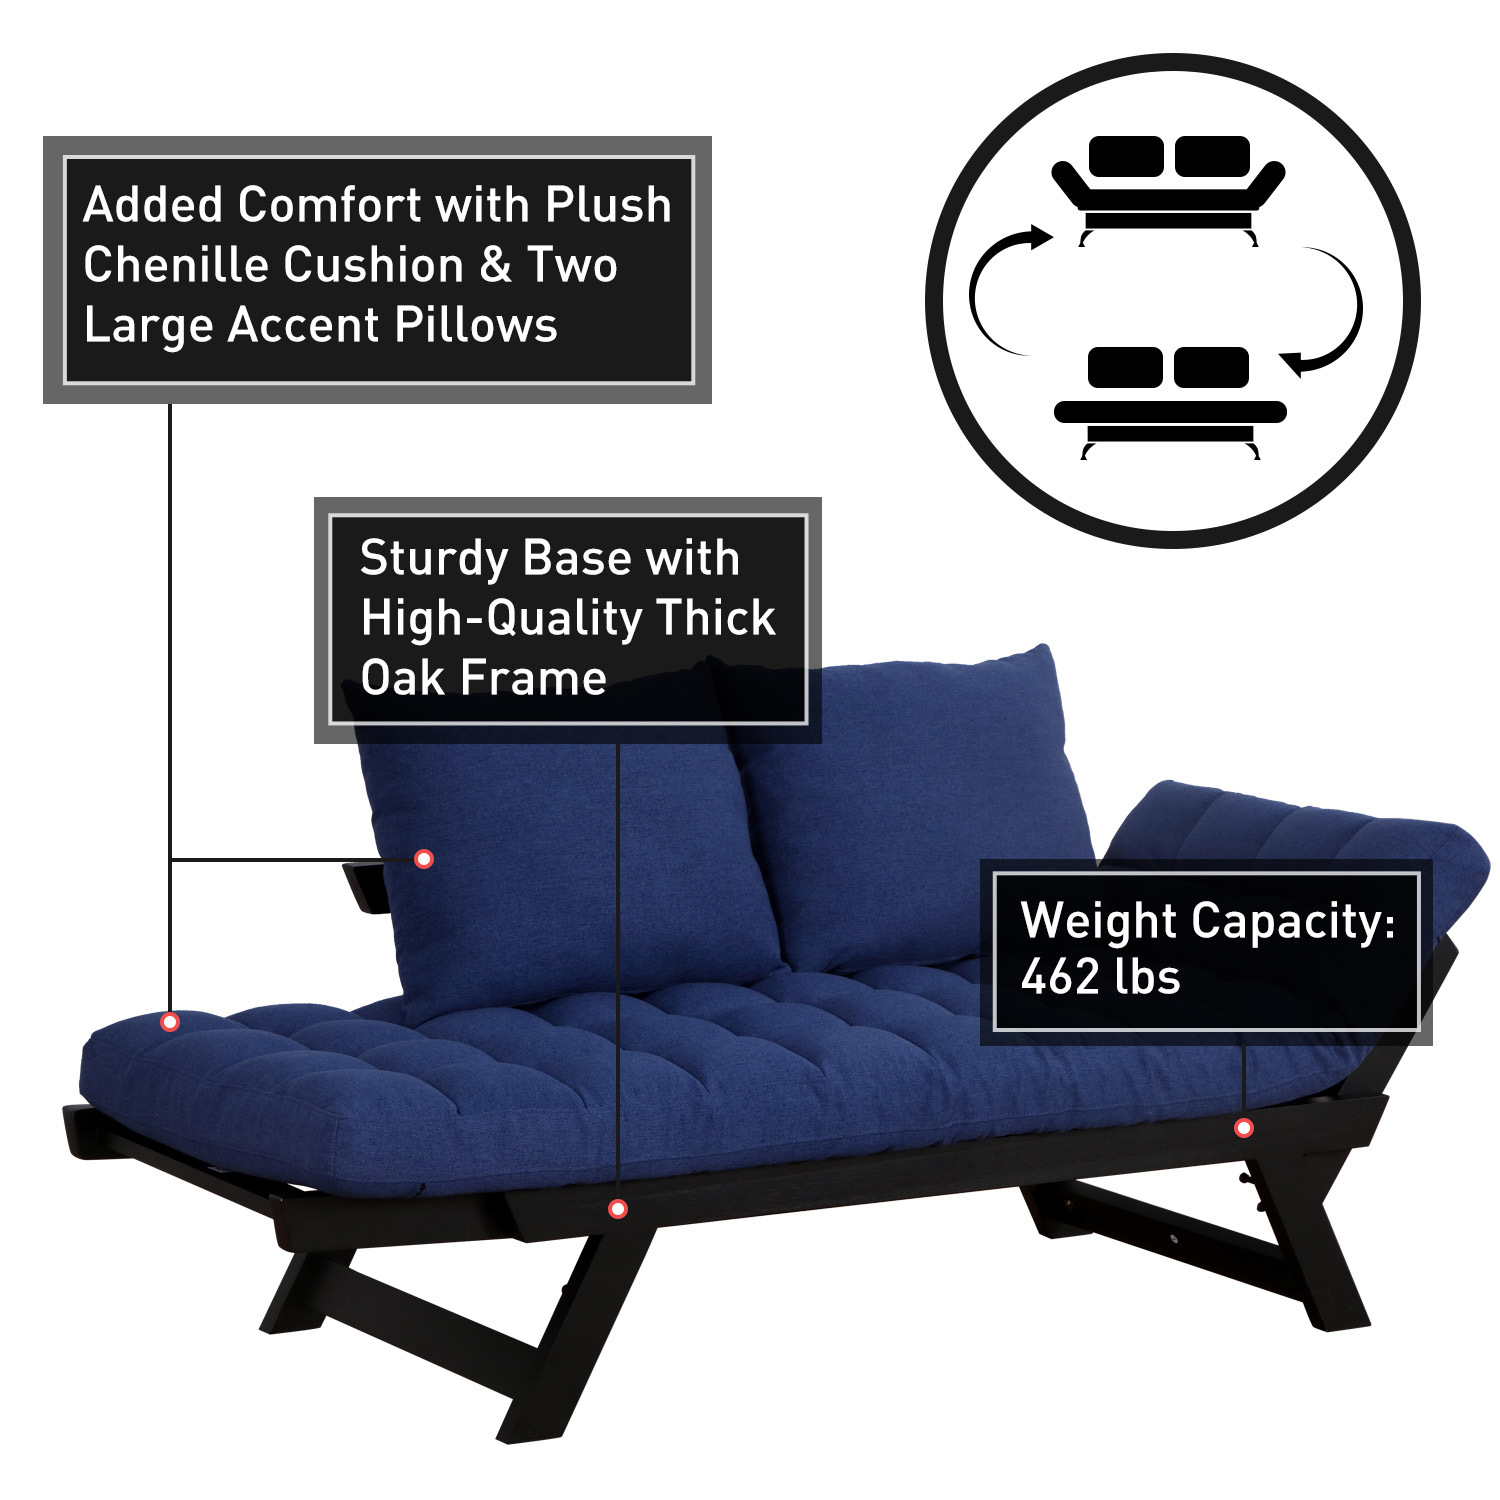 Convertible-Sofa-Bed-Sleeper-Couch-Chaise-Lounge-Chair-Adjustable-Padded-Pillow thumbnail 13